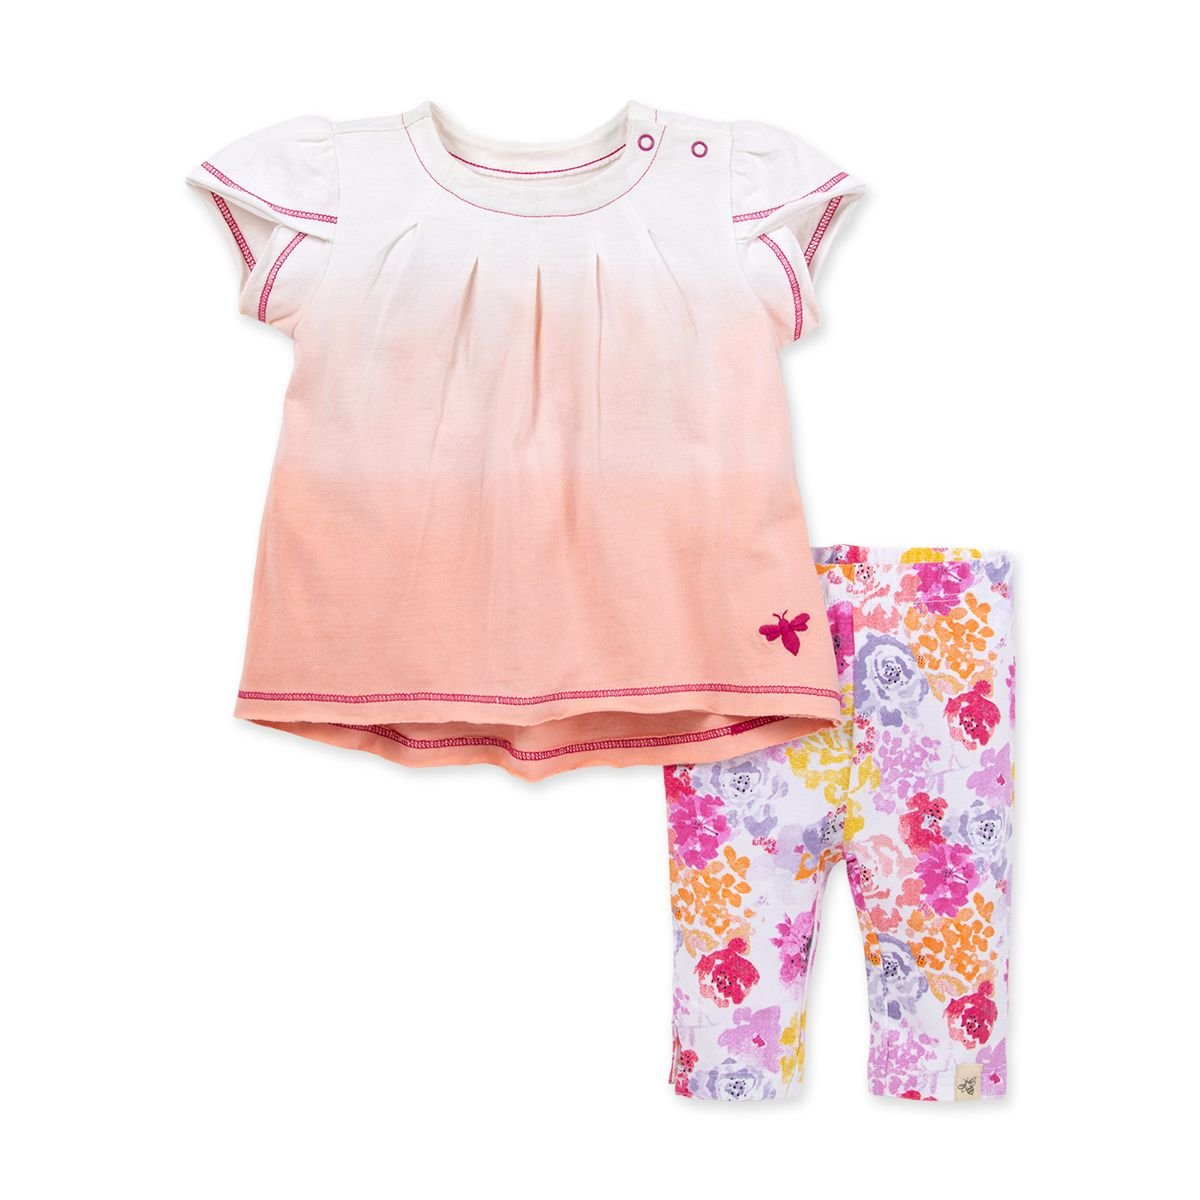 Dip Dye Floral 2 Pc Set LY26595